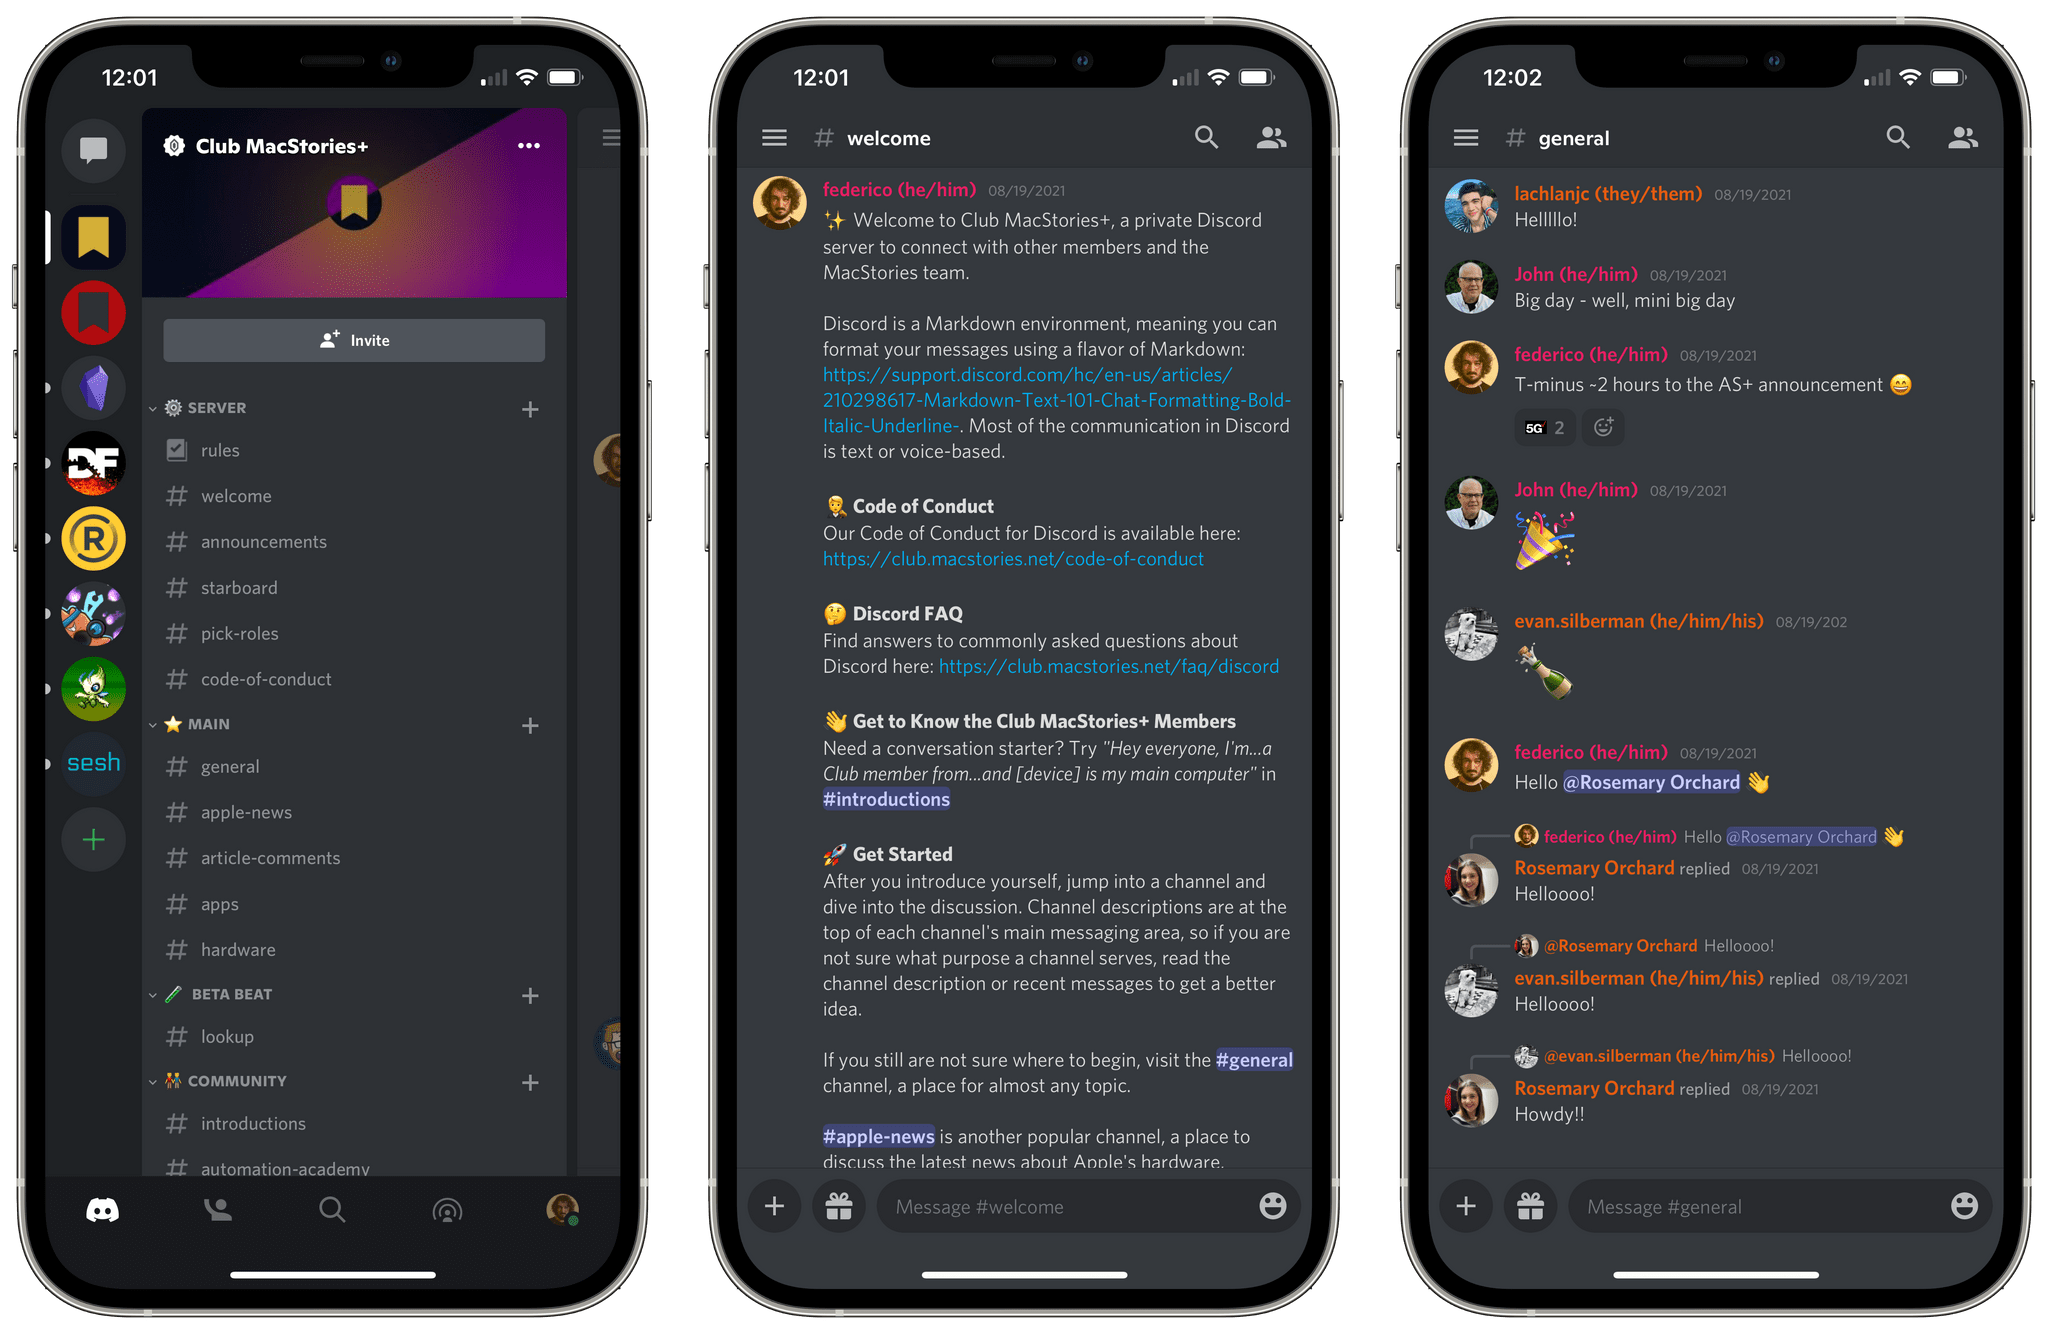 Our Discord server for Club MacStories+ and Club Premier members.